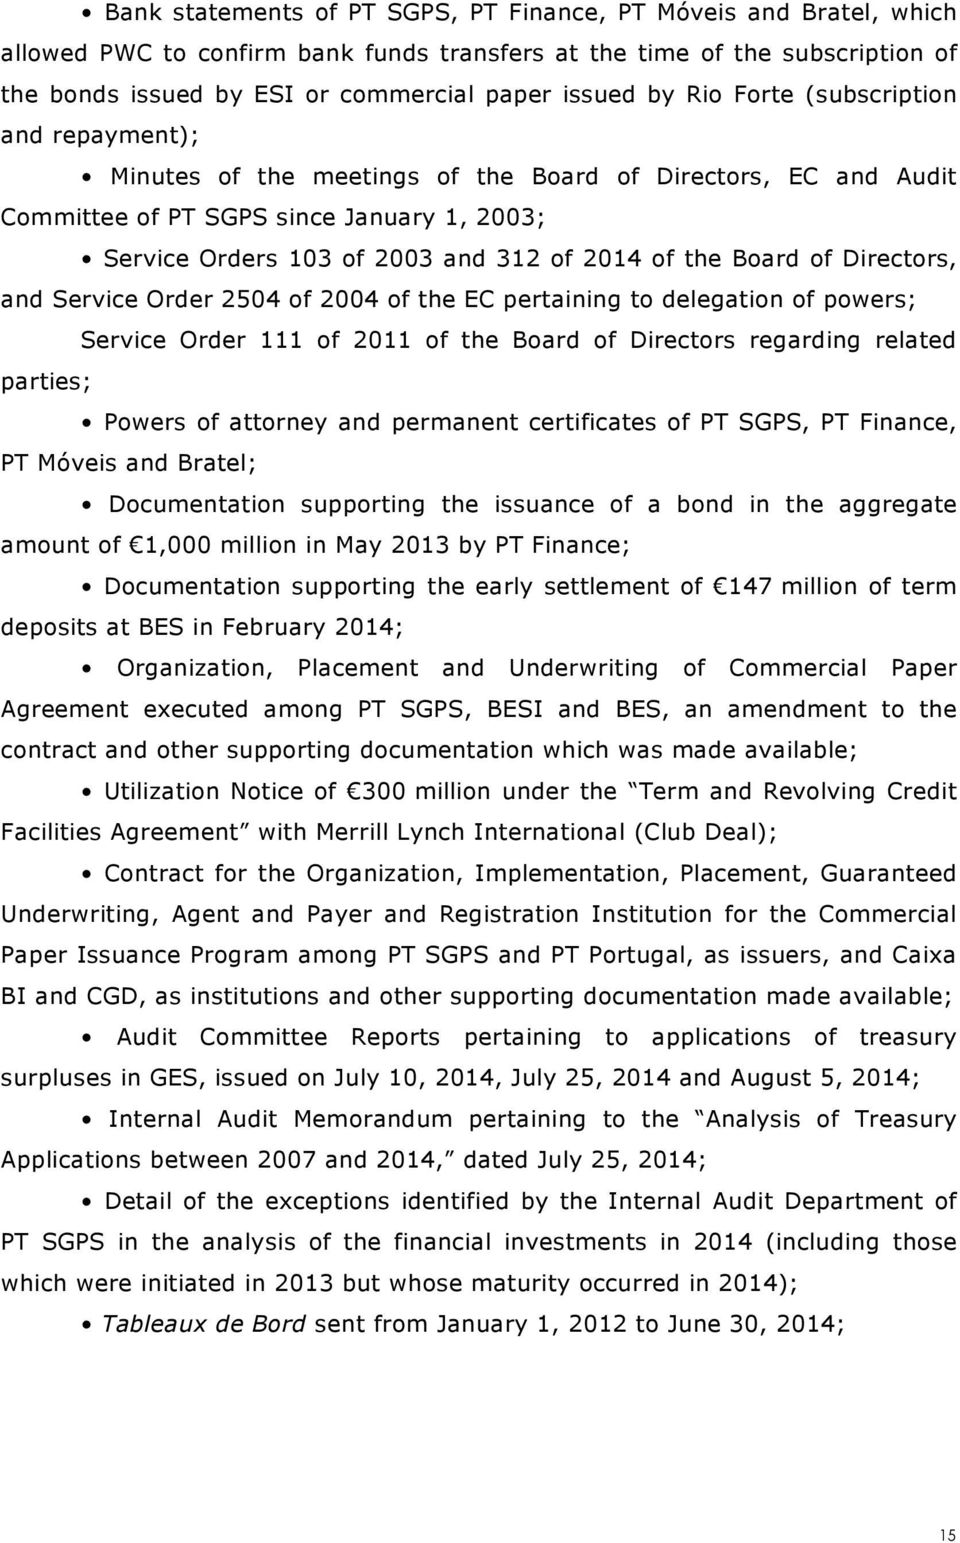 the Board of Directors, and Service Order 2504 of 2004 of the EC pertaining to delegation of powers; Service Order 111 of 2011 of the Board of Directors regarding related parties; Powers of attorney